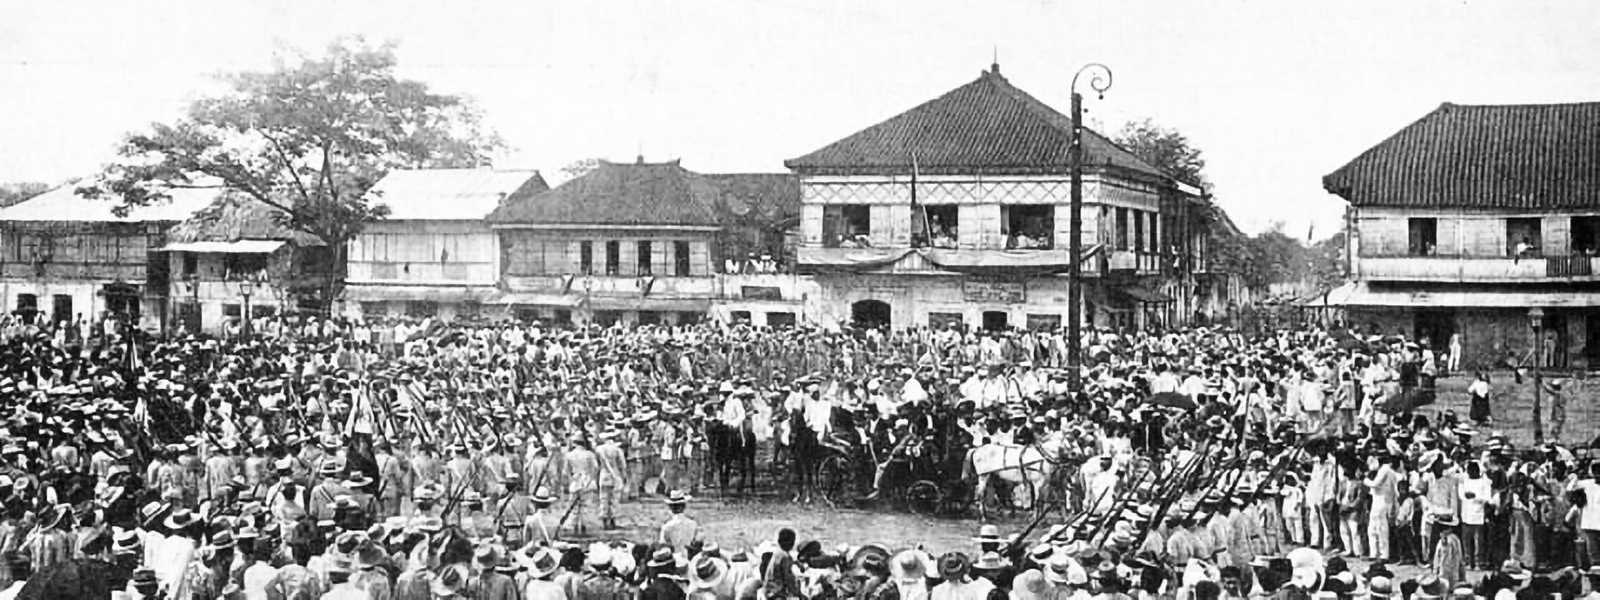 Black and white photo of many people gathered in a town center